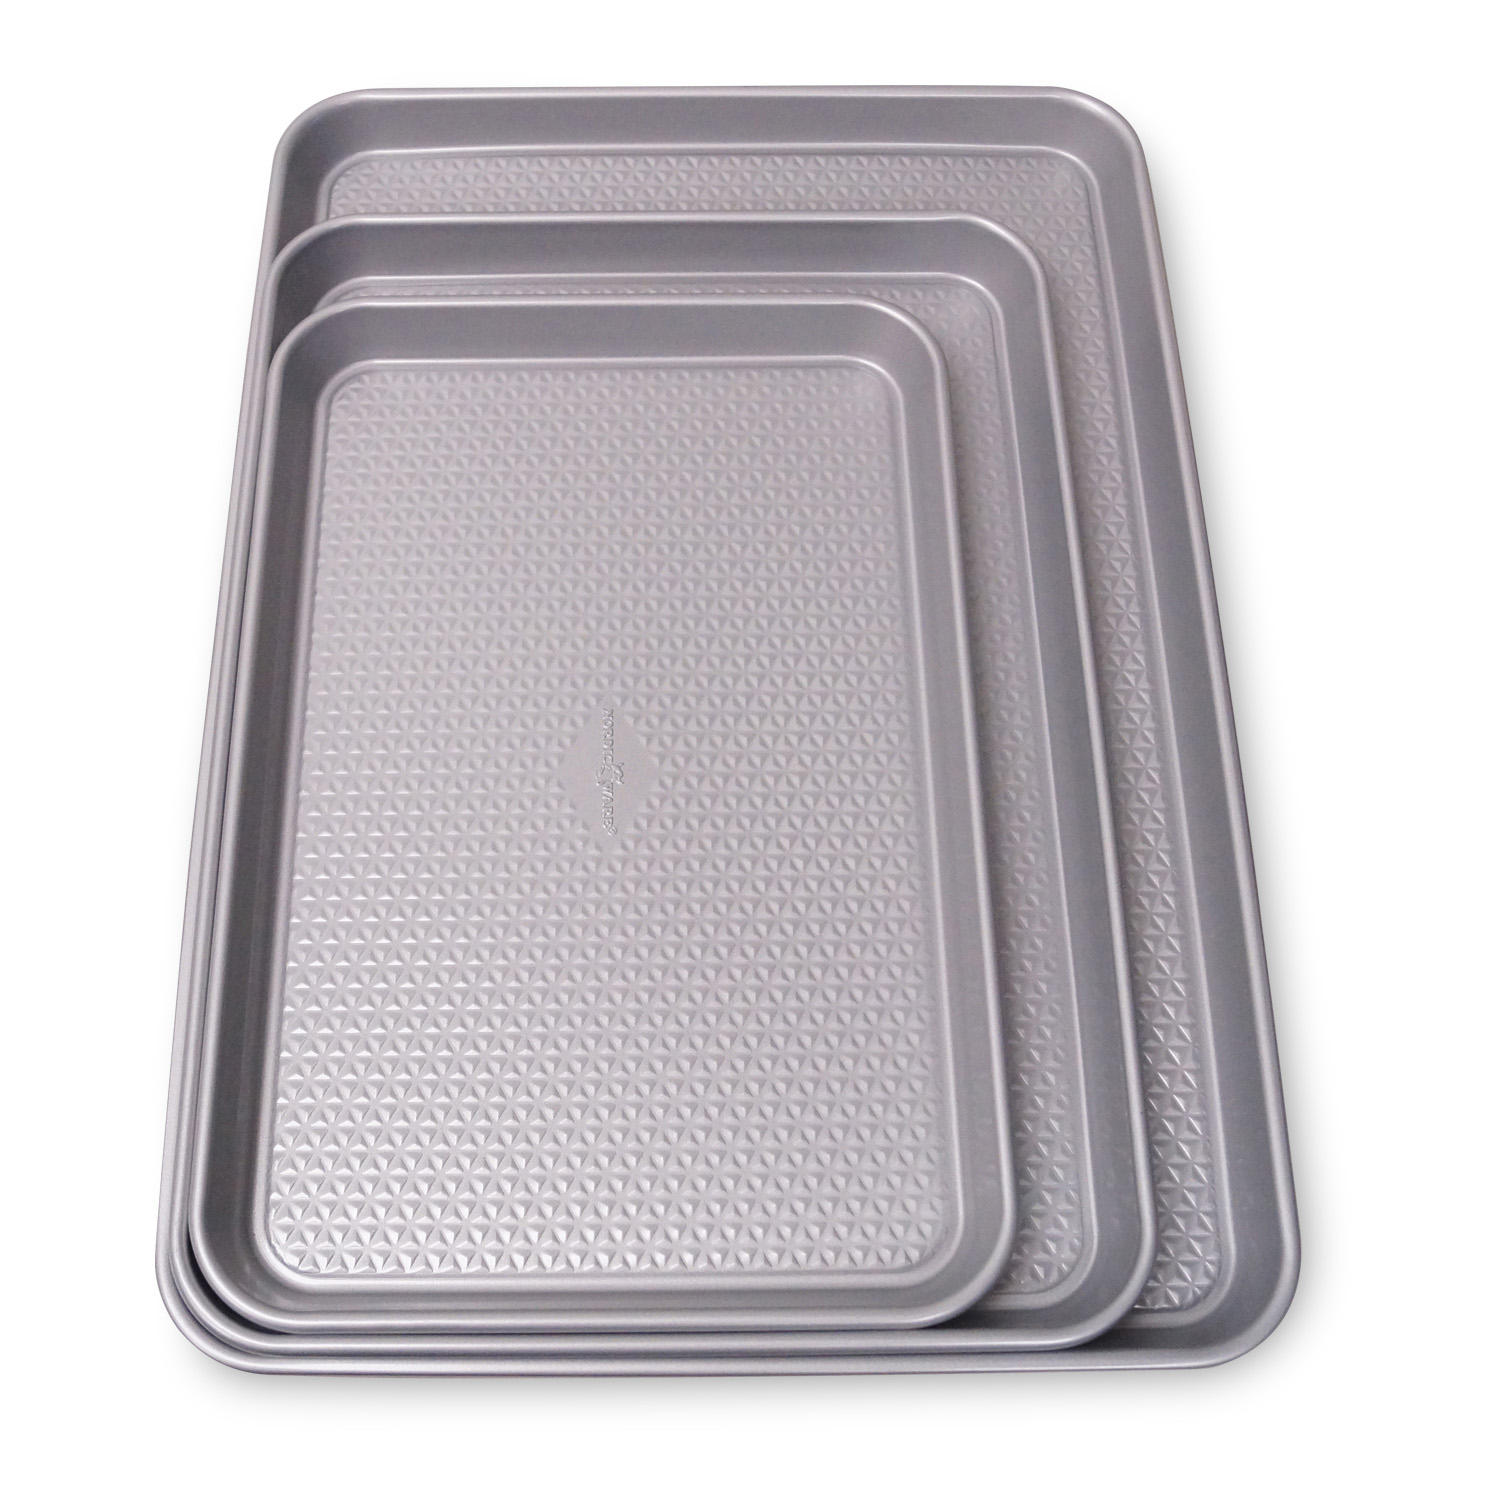 Nordic Ware 3-Piece Nonstick Baking Sheet Pan Set